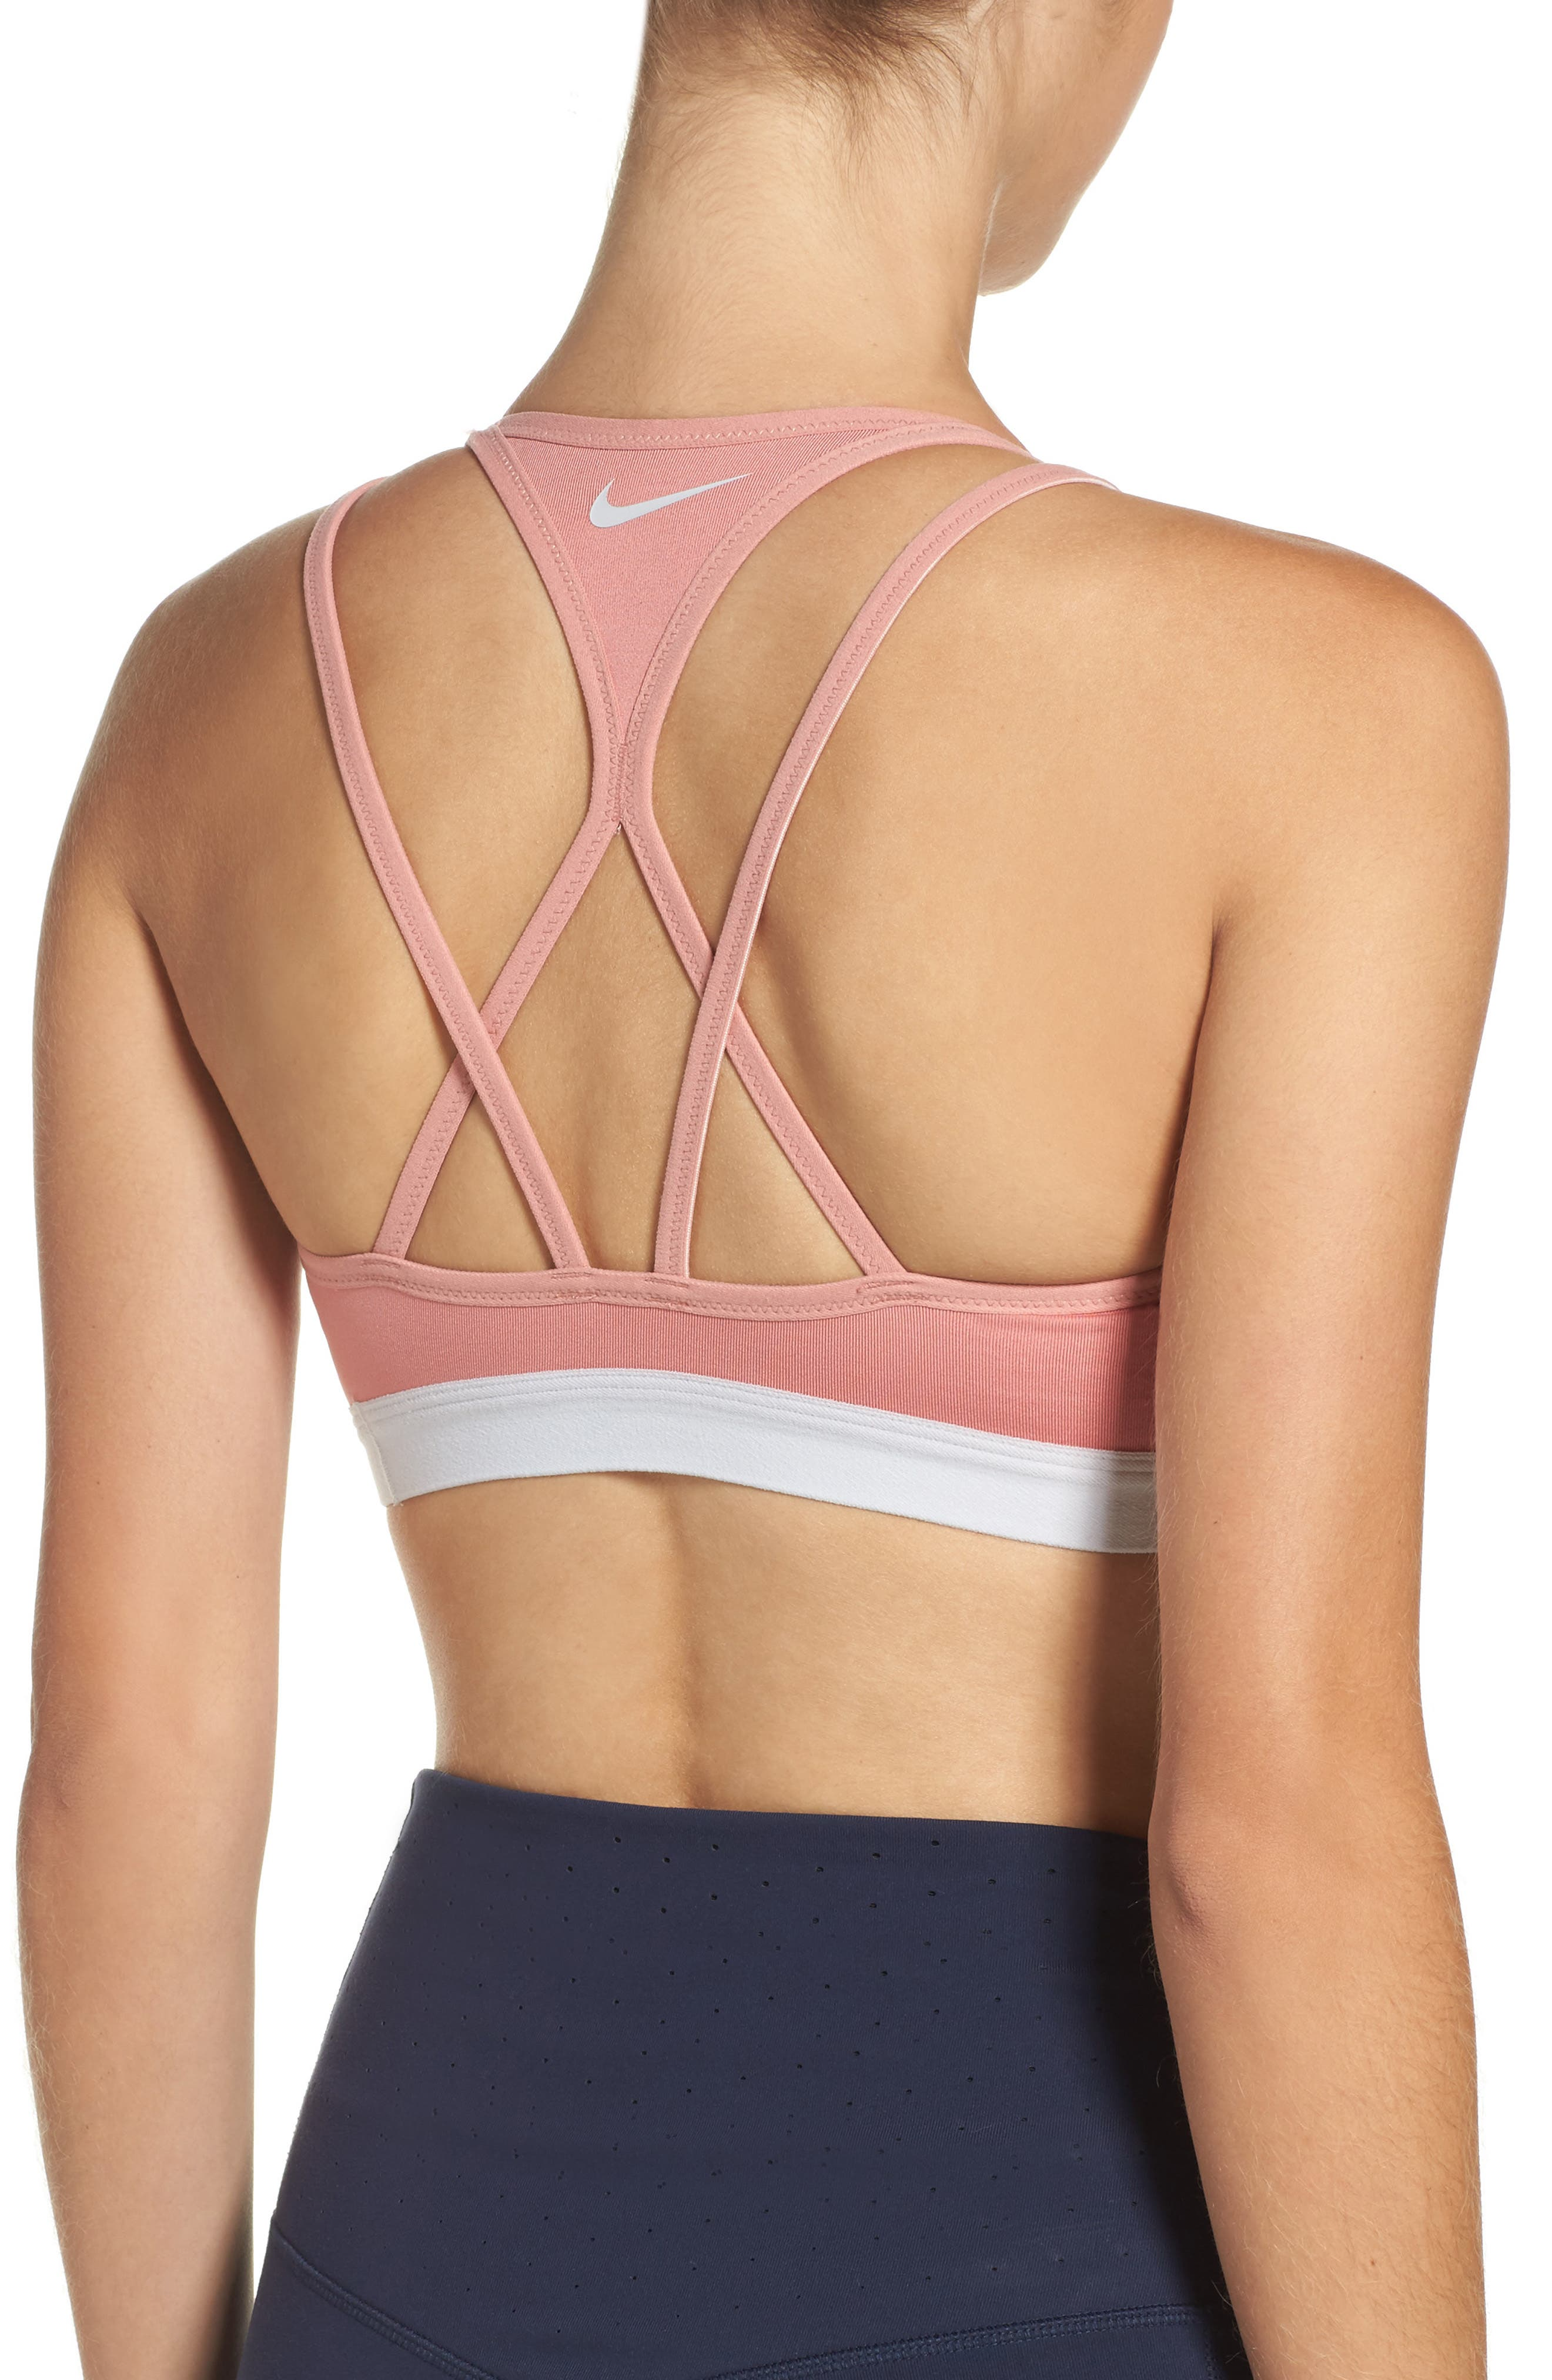 Pro Indy Cooling Sports Bra,                             Alternate thumbnail 8, color,